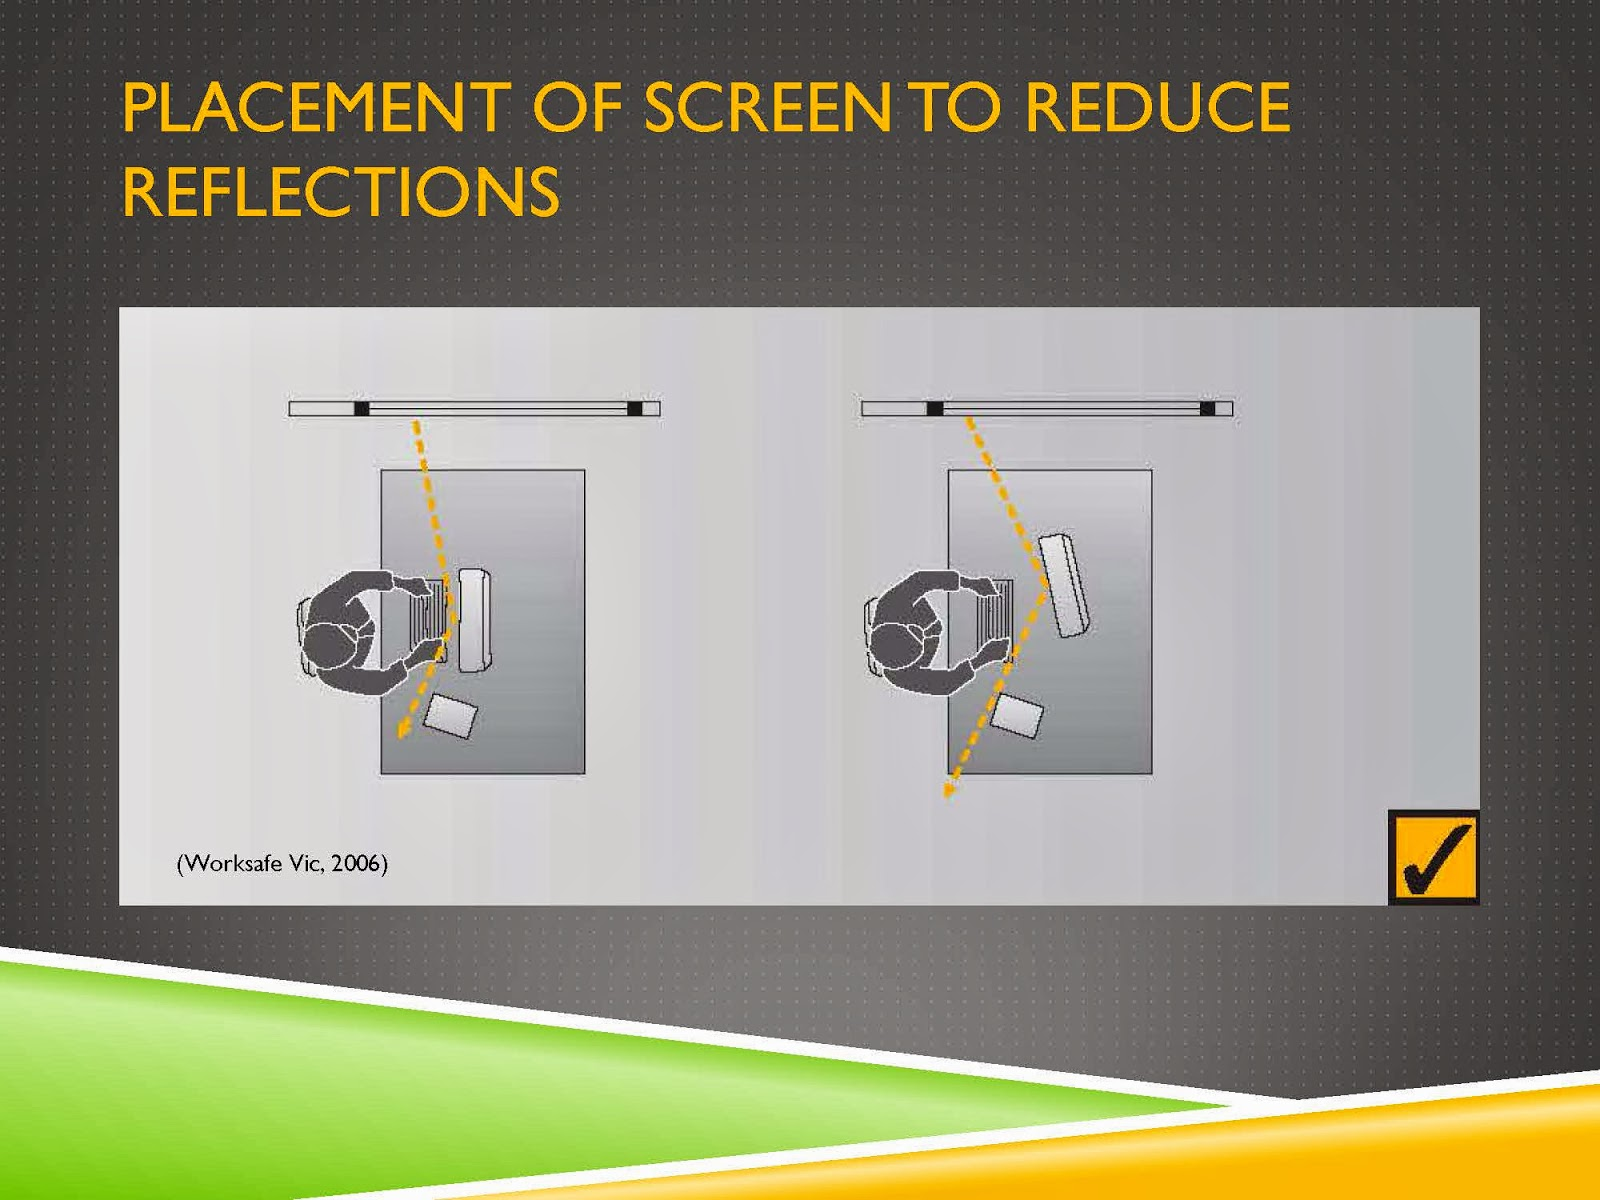 SCREEN PLACEMENT TO REDUCE REFLECTIONS